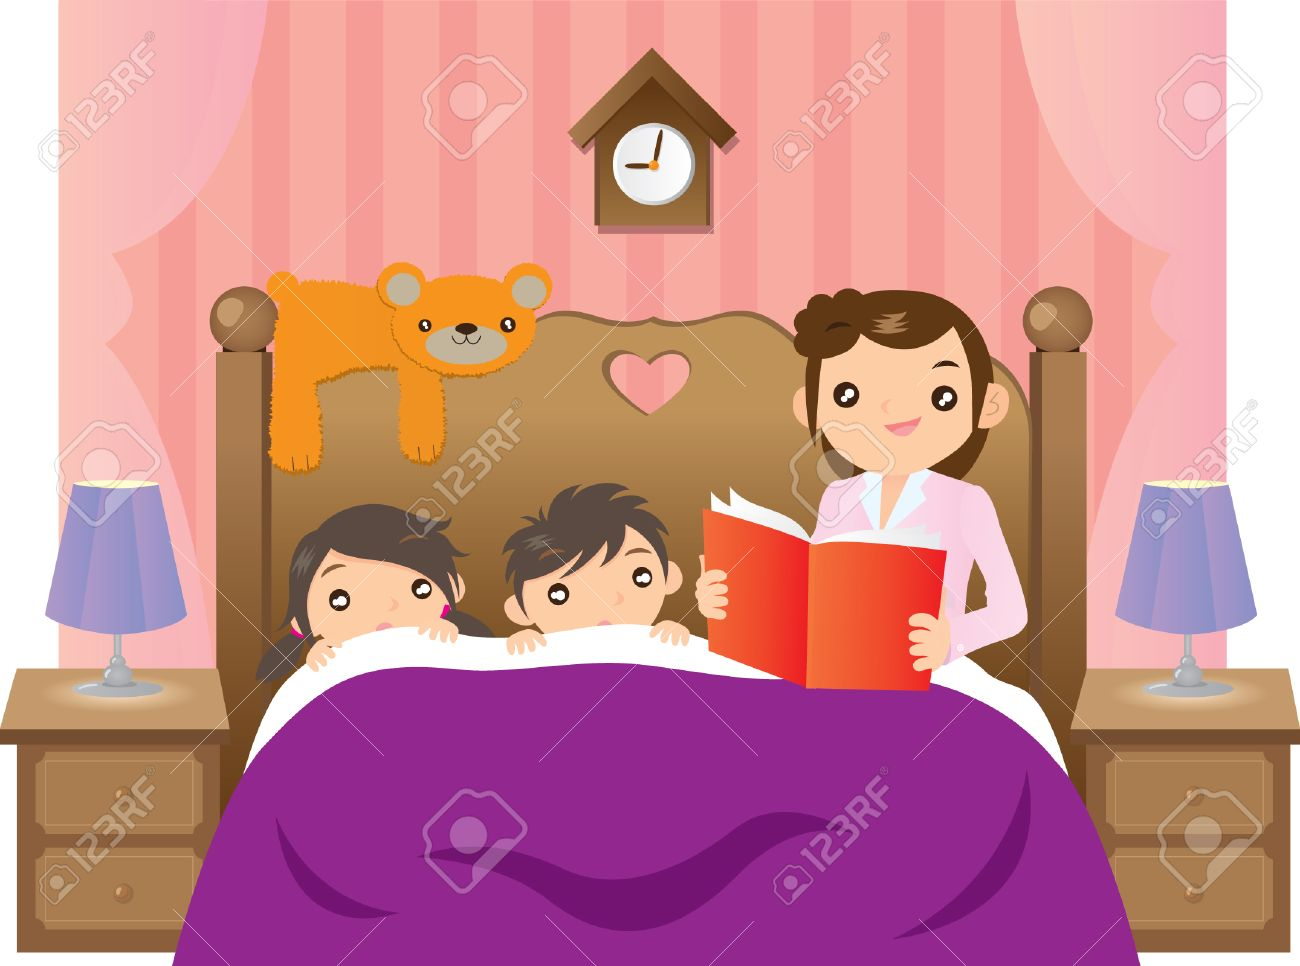 hight resolution of mother telling story to her 2 kids on bed